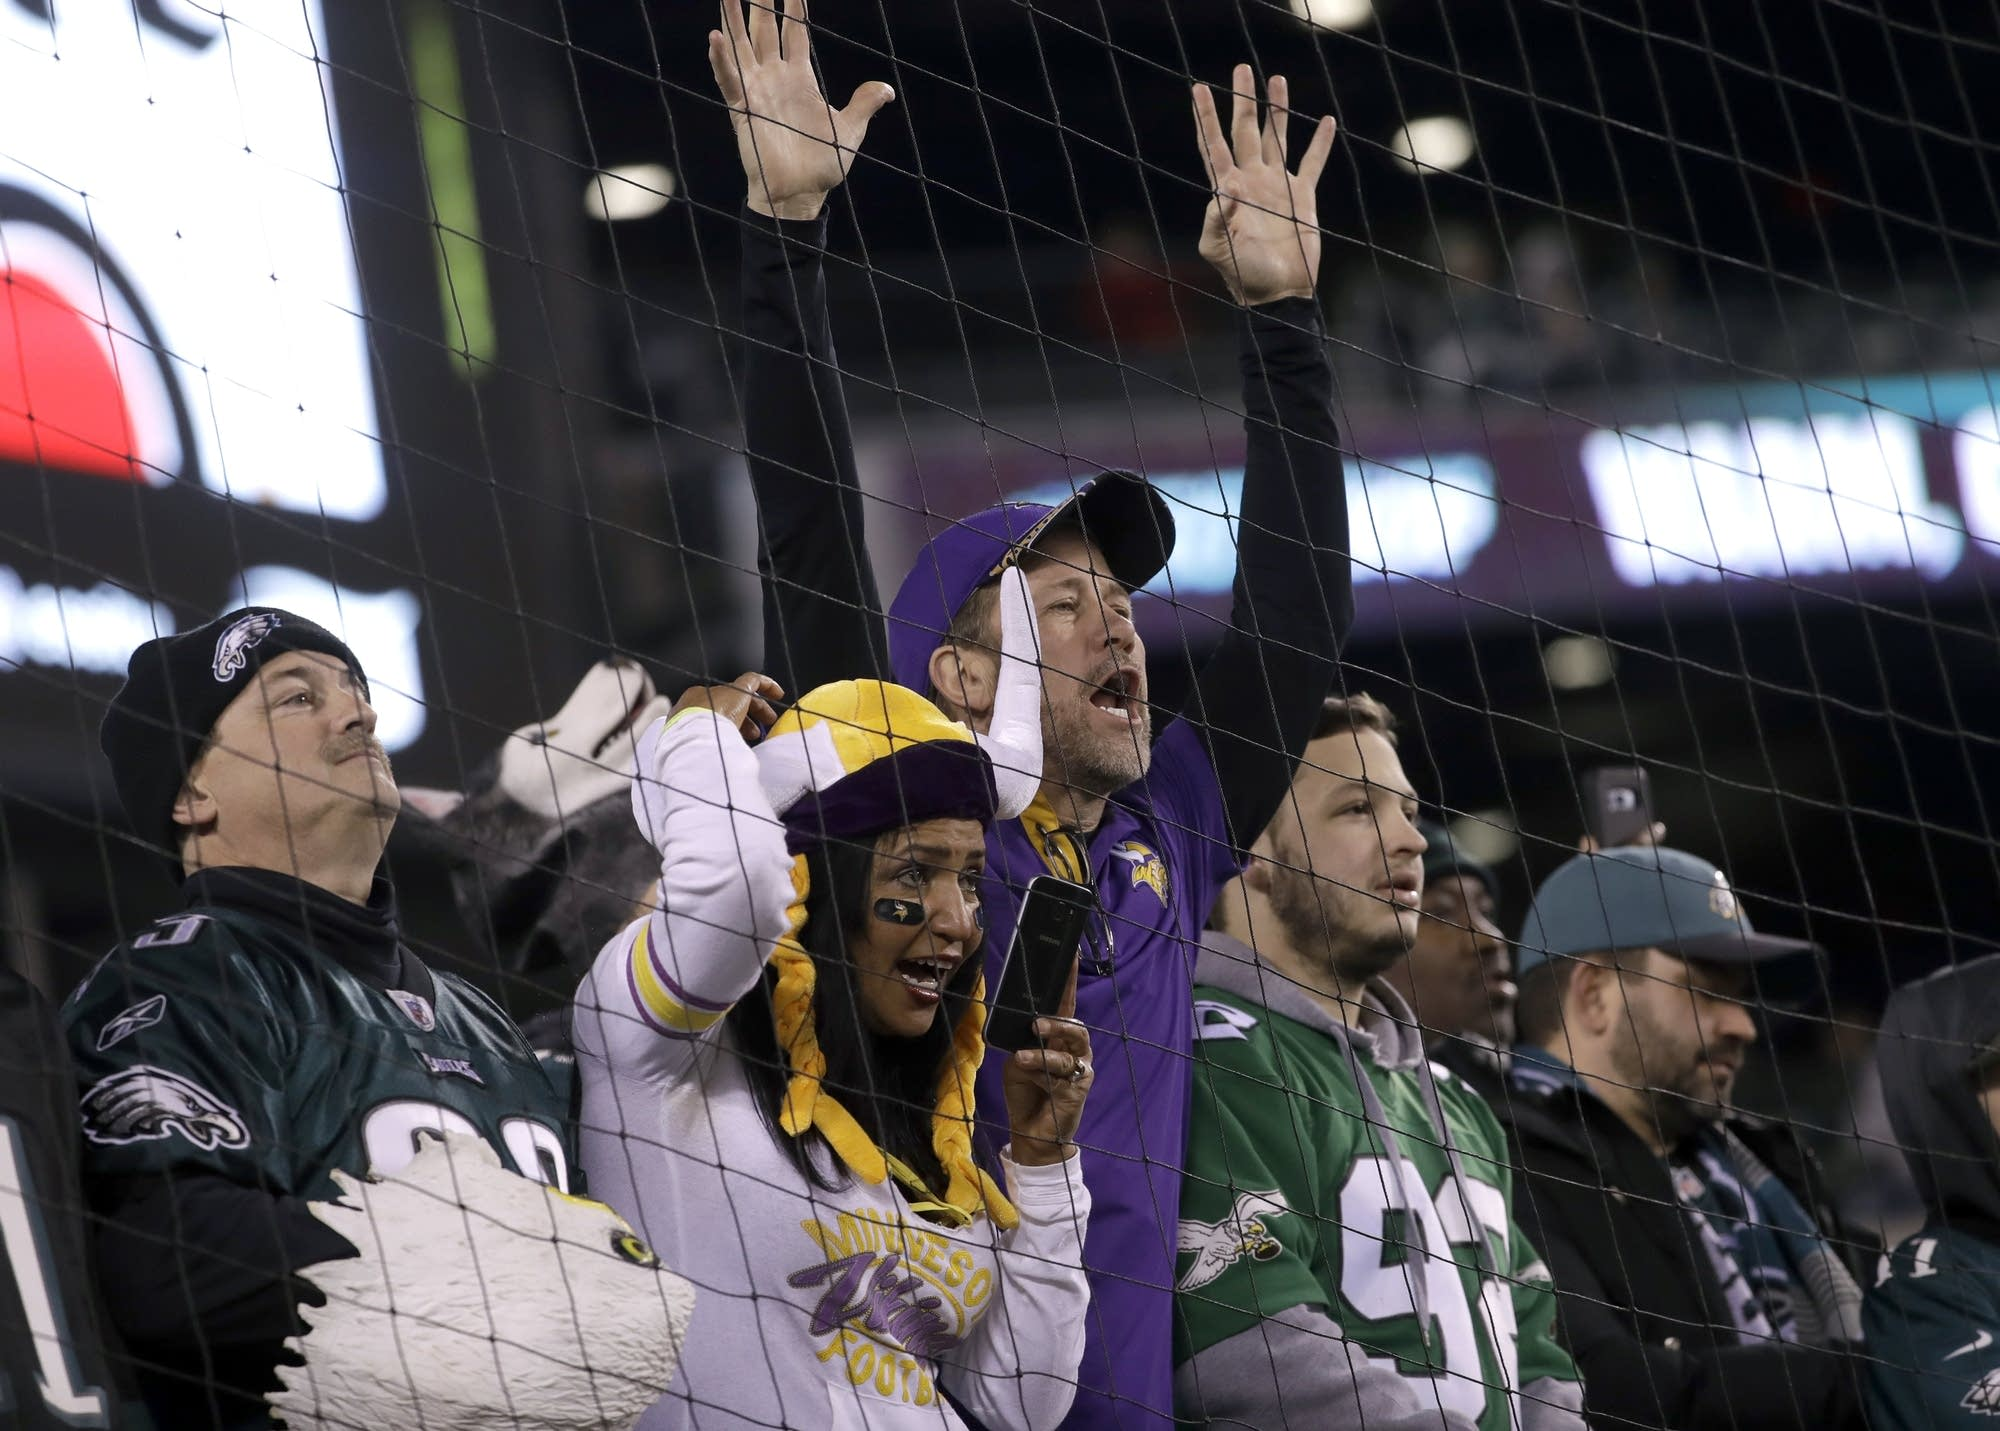 Fans watch warm ups before the NFL football NFC championship game.